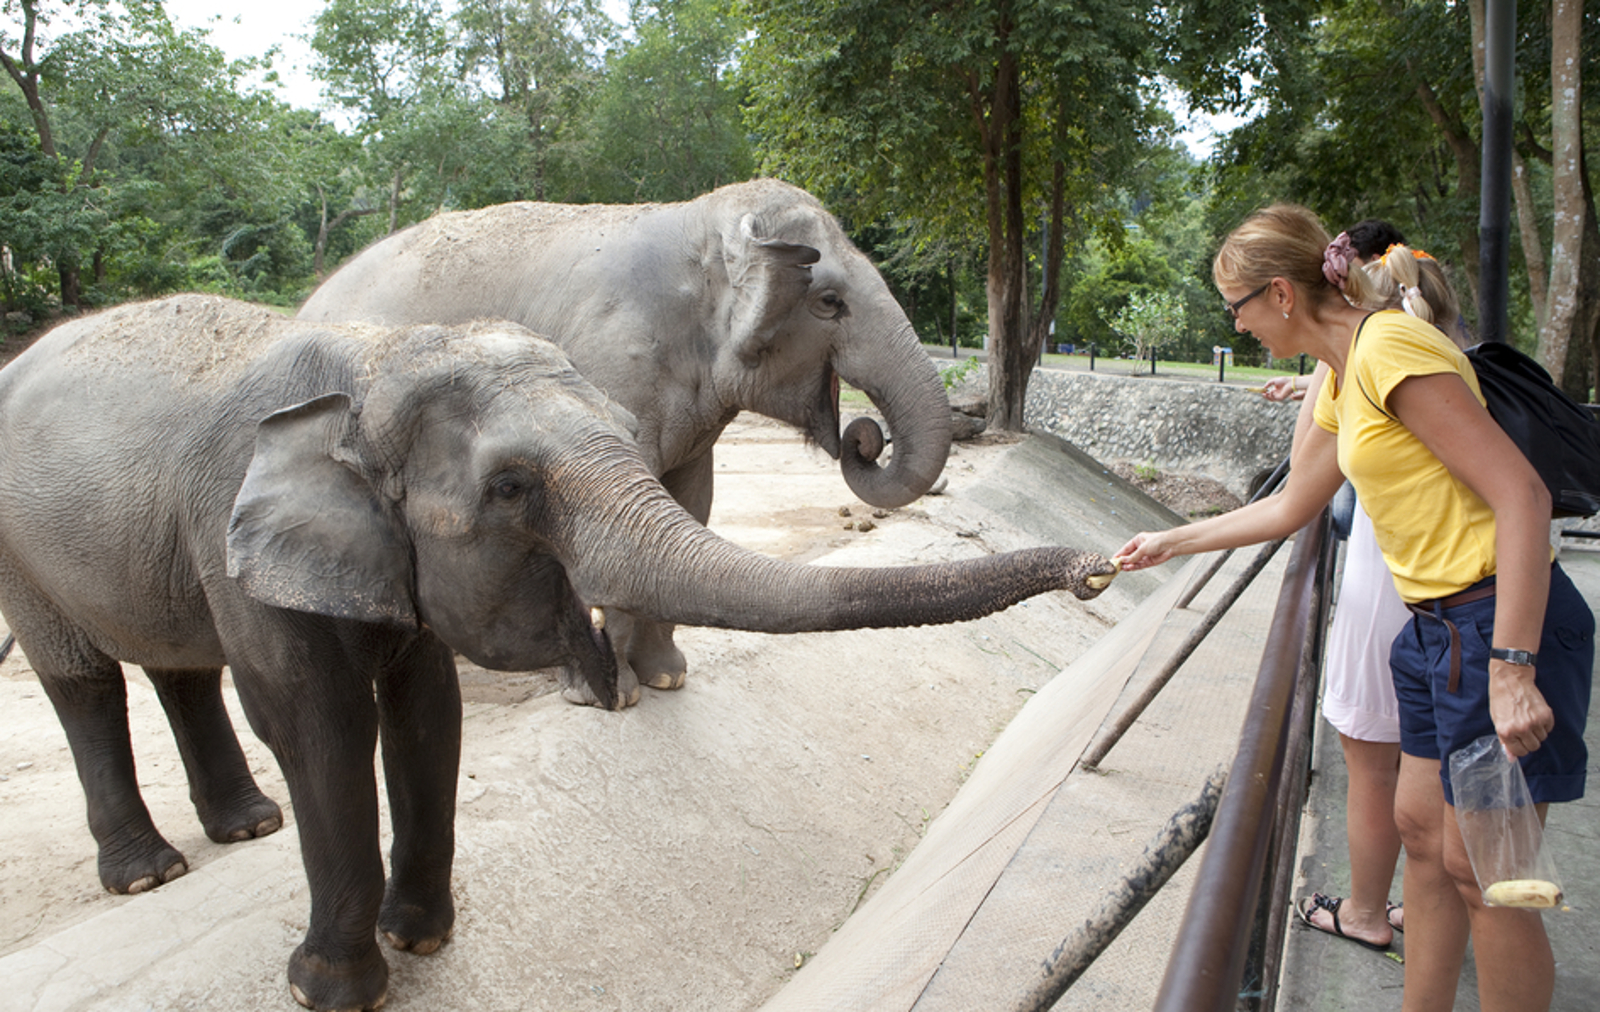 How Zoos Create a False Sense of Entitlement When it Comes to Interacting With Animals